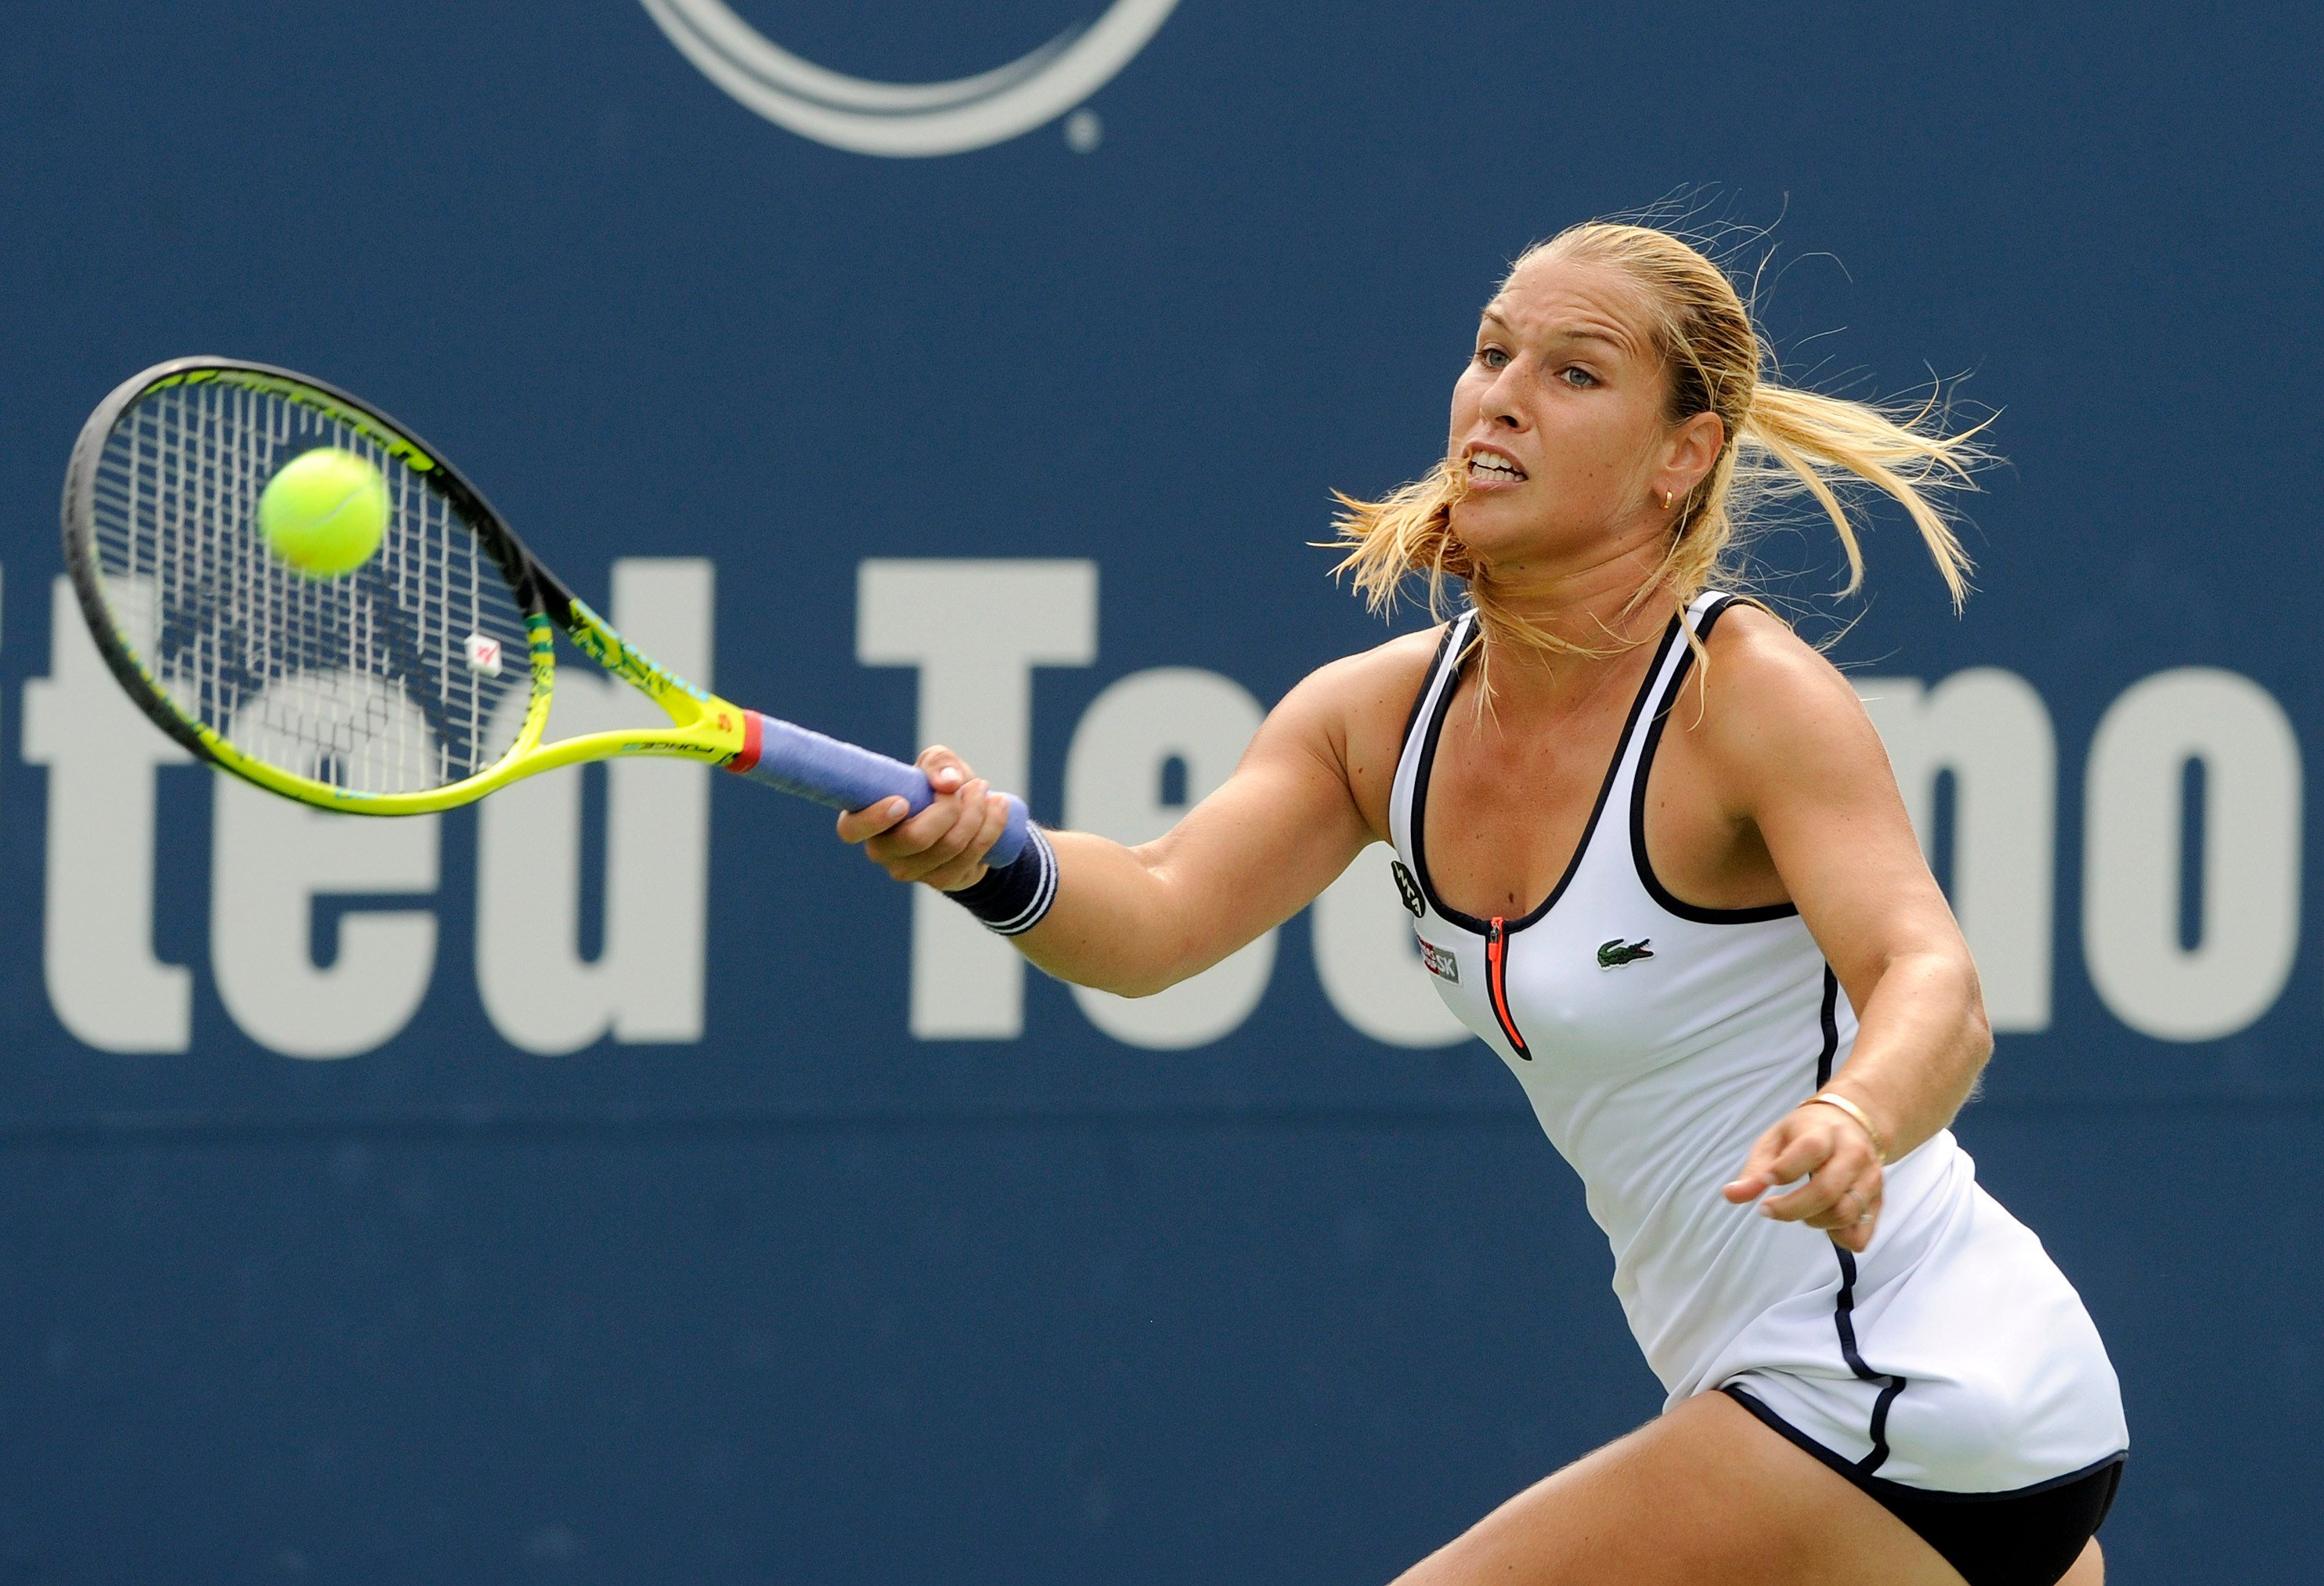 Dominika Cibulkova, of Slovakia, reaches for a forehand during her match against Lucie Safarova, of the Czech Republic, during the semifinals of the Connecticut Open tennis tournament in New Haven, Conn., on Aug. 27, 2015. (AP Photo/Fred Beckham)